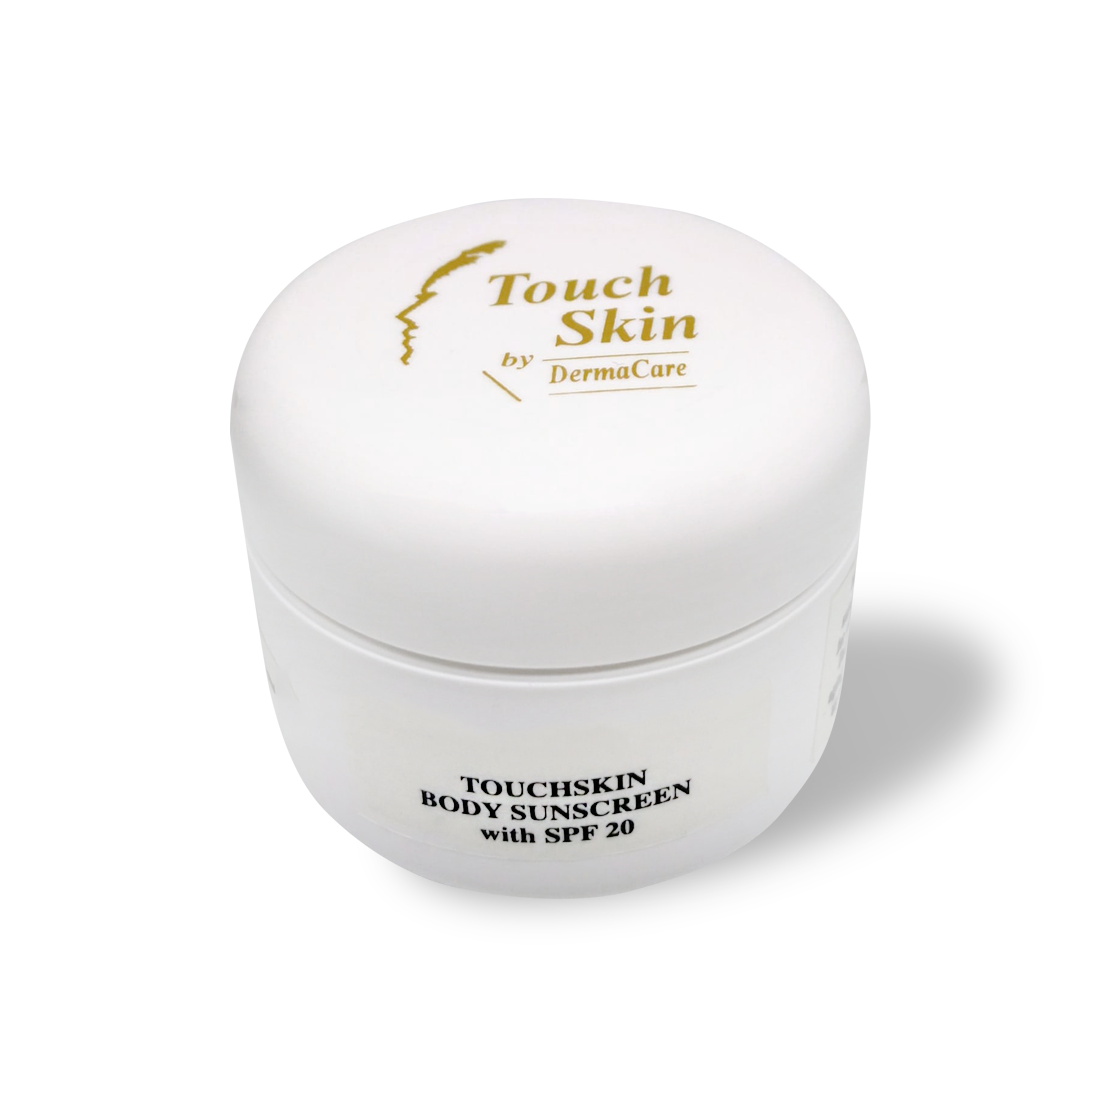 Touchskin Body Sunscreen with SPF 20 - Dermacare Therapeutic Skincare